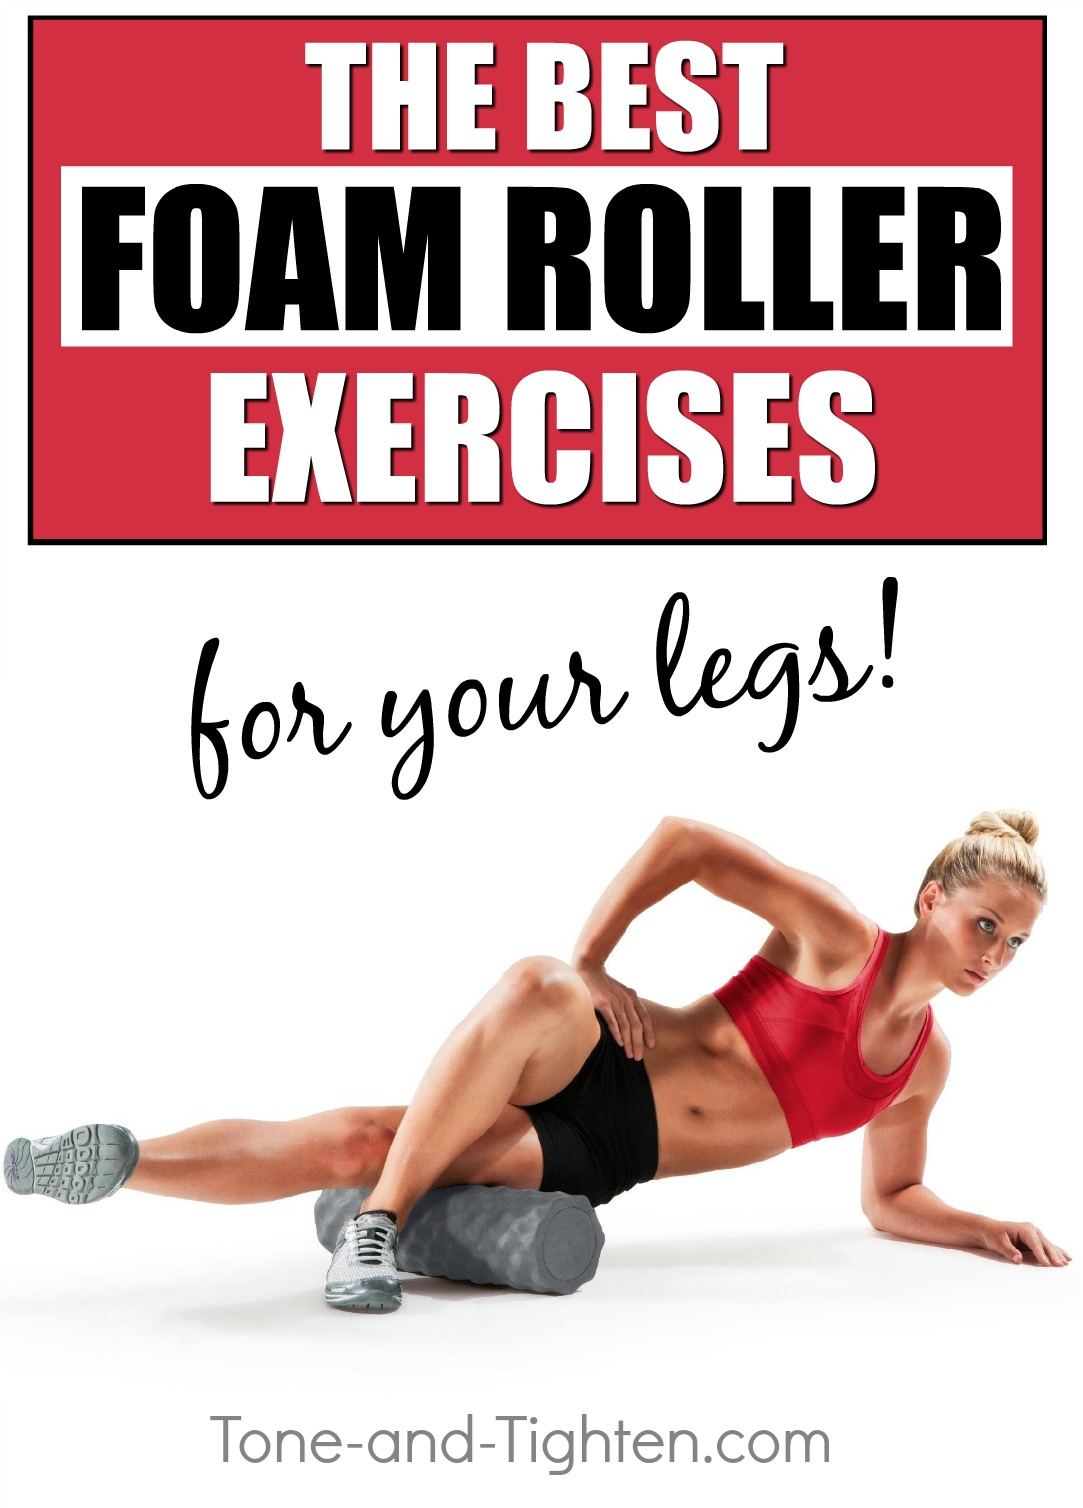 6 of the best foam roller exercises for your legs! Reduce soreness and prevent injury with these lower body foam roll exercises